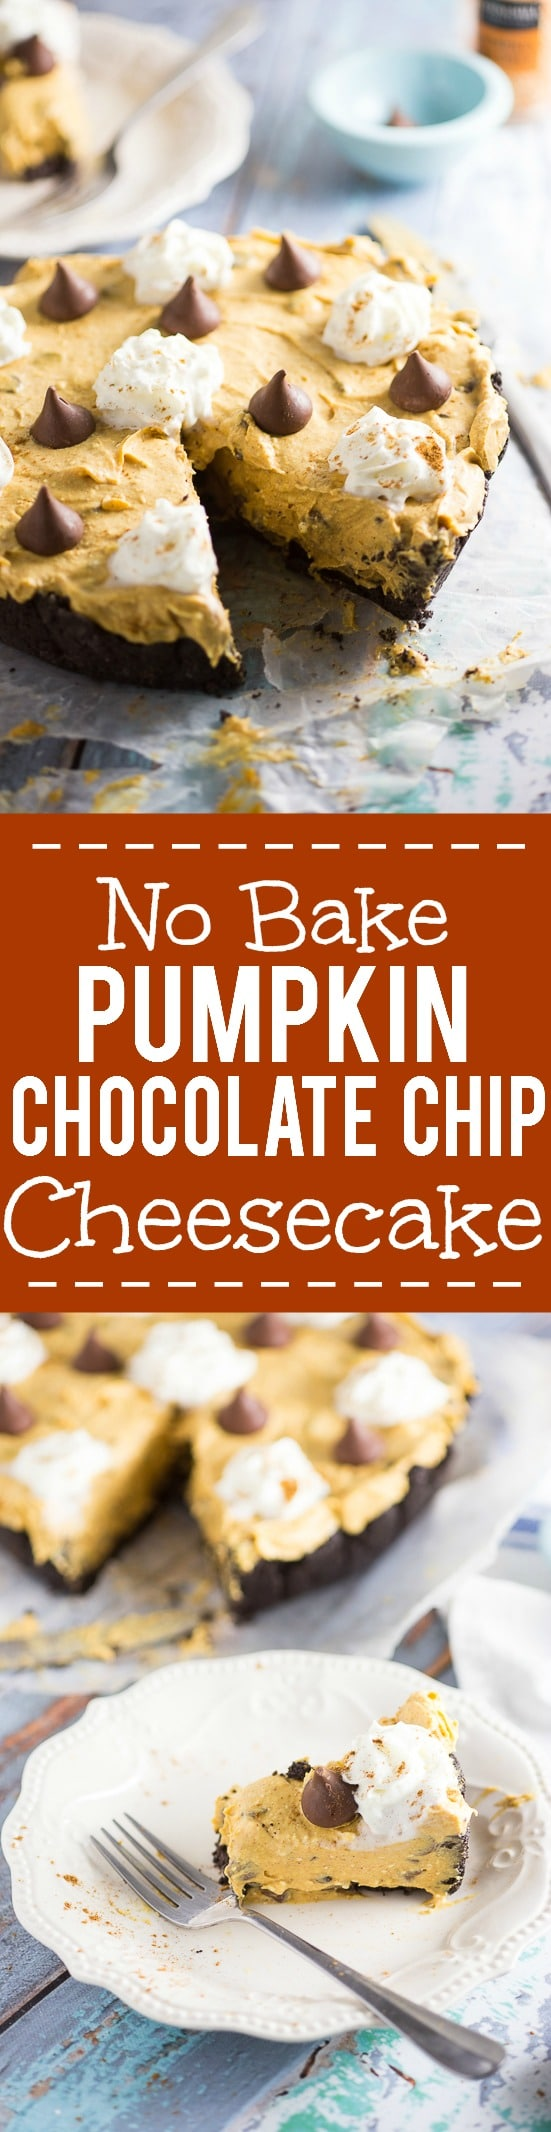 No Bake Pumpkin Chocolate Cheesecake Recipe -Festive, delicious, and easy No Bake Pumpkin Chocolate Cheesecake with a no bake pumpkin spice filling and chocolate chips in a chocolate Oreo crust. Perfect for both pumpkin spice lovers and chocolate lovers! No bake pumpkin spice cheesecake, chocolate chips, and a chocolate oreo crust?! Sounds amazing. Would be an easy Thanksgiving dessert recipe too!